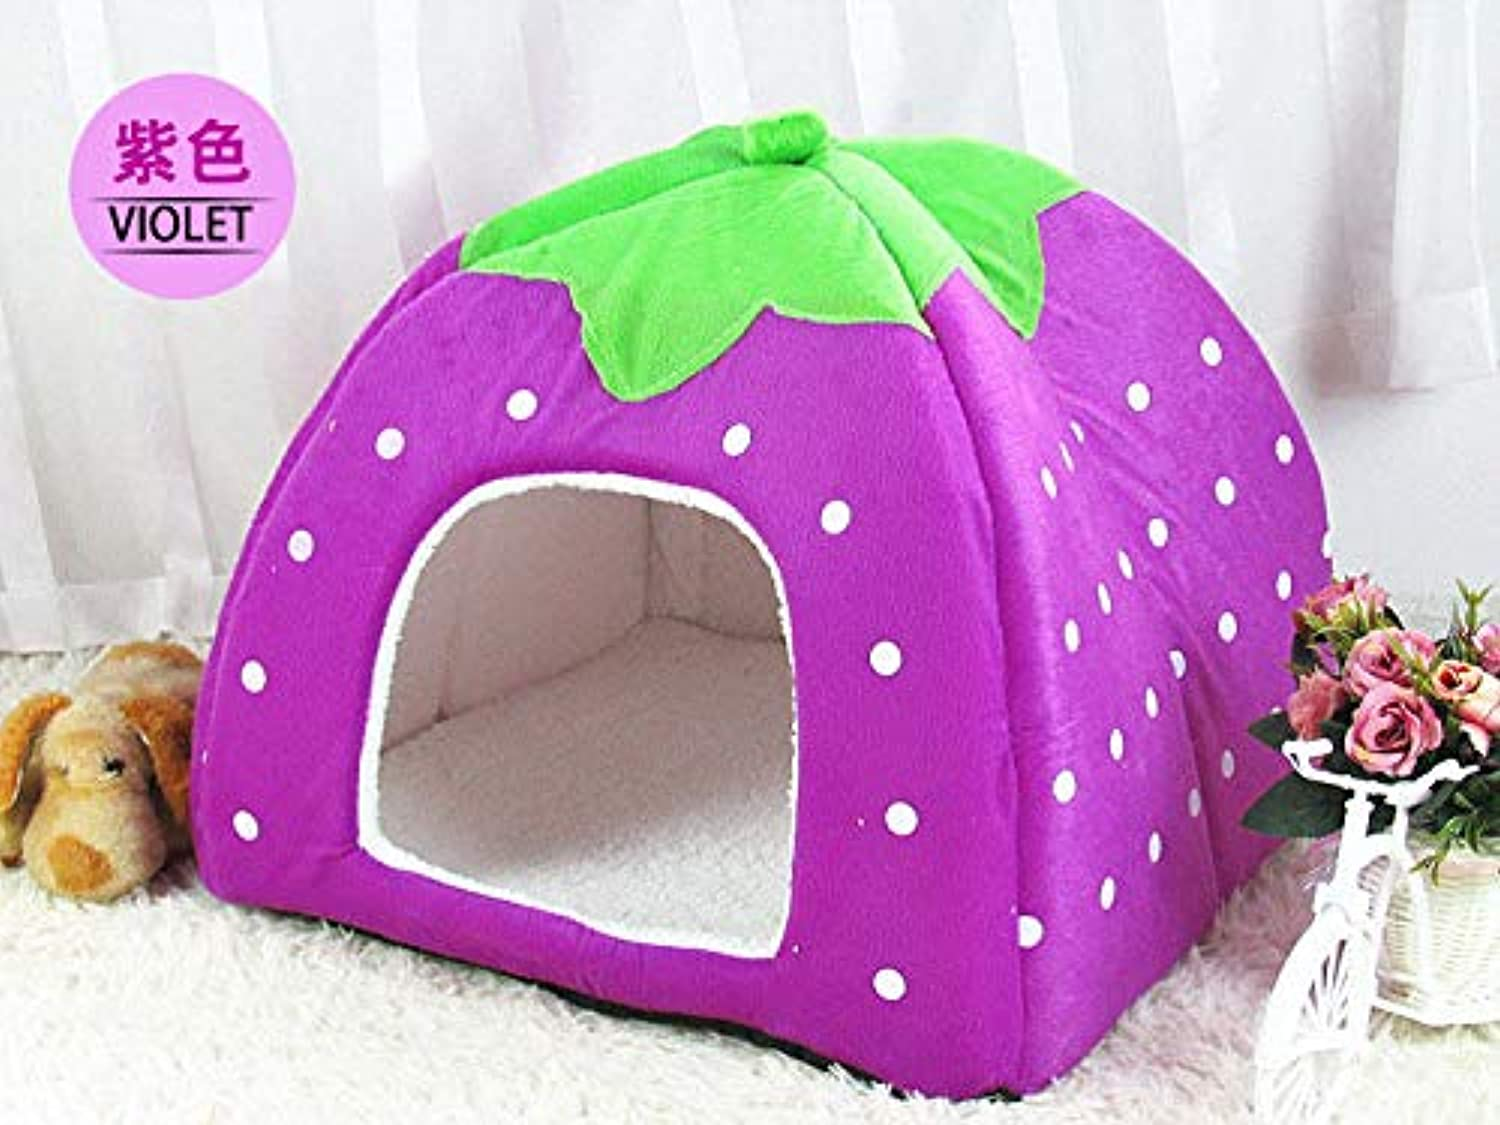 FidgetGear Soft Pet Dog Cat Strawberry Bed Durable House Kennel Doggy Puppy Cushion Basket Purple XXL